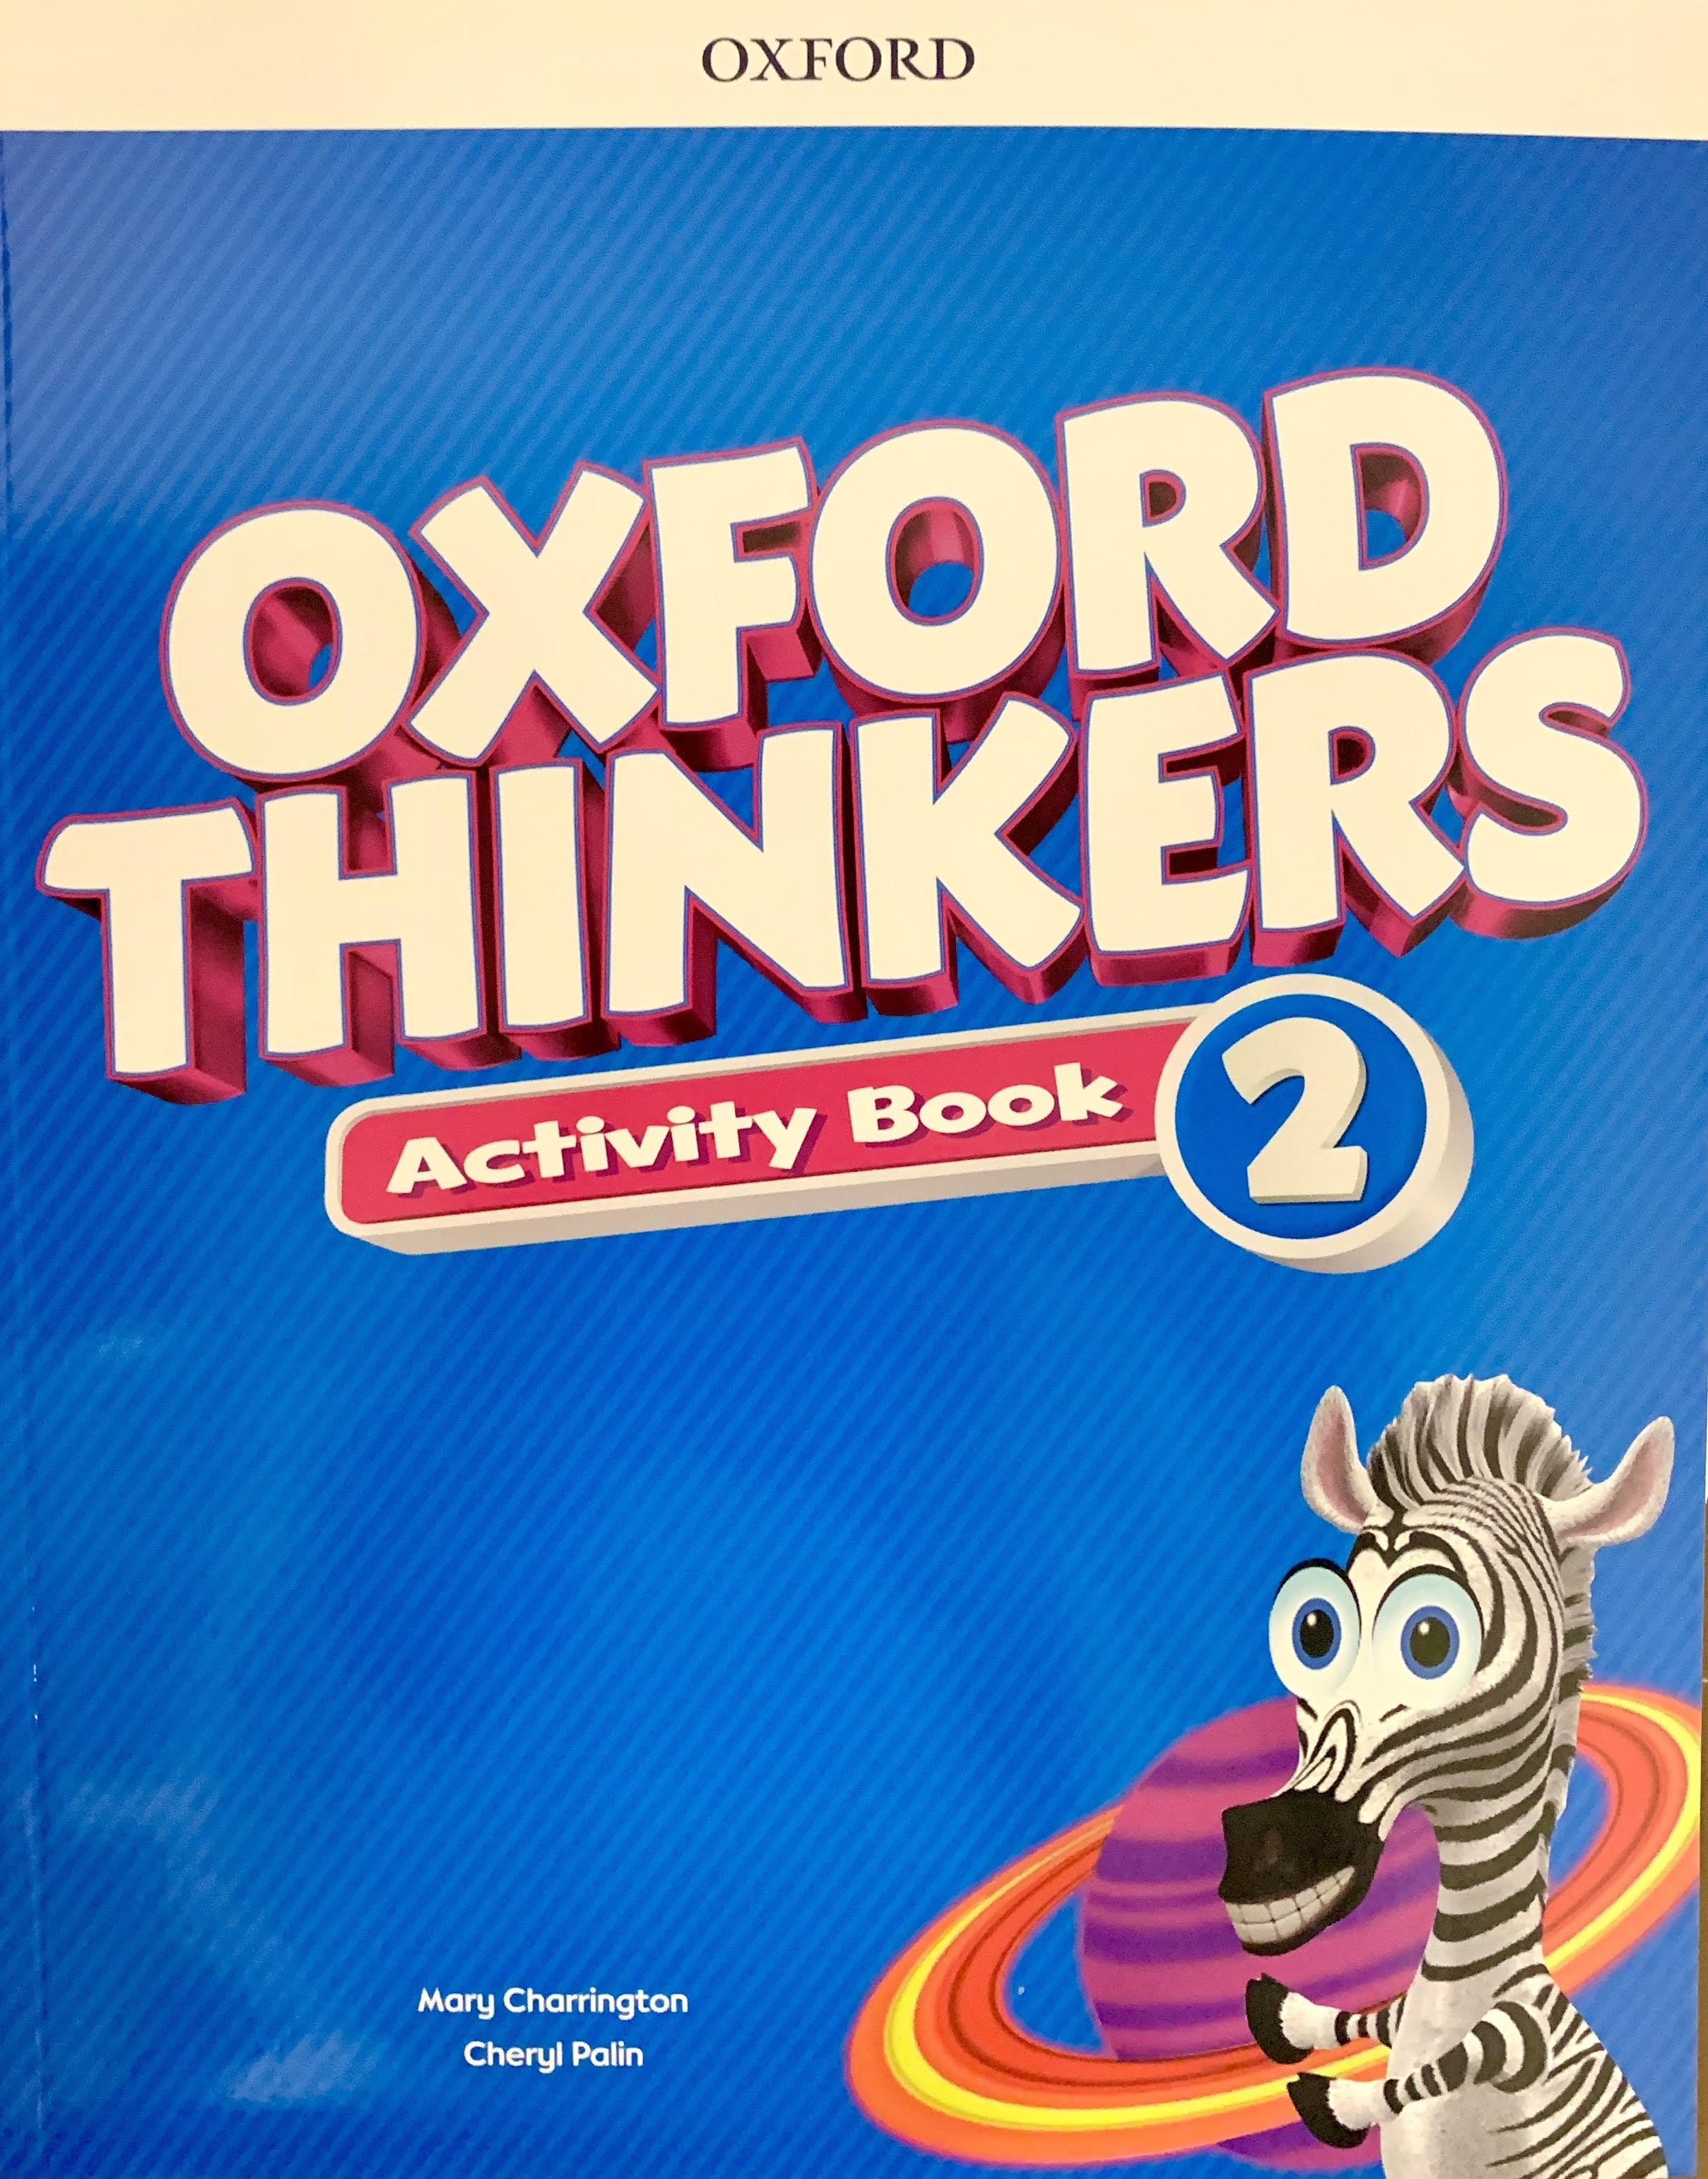 Oxford Thinkers Activity 2